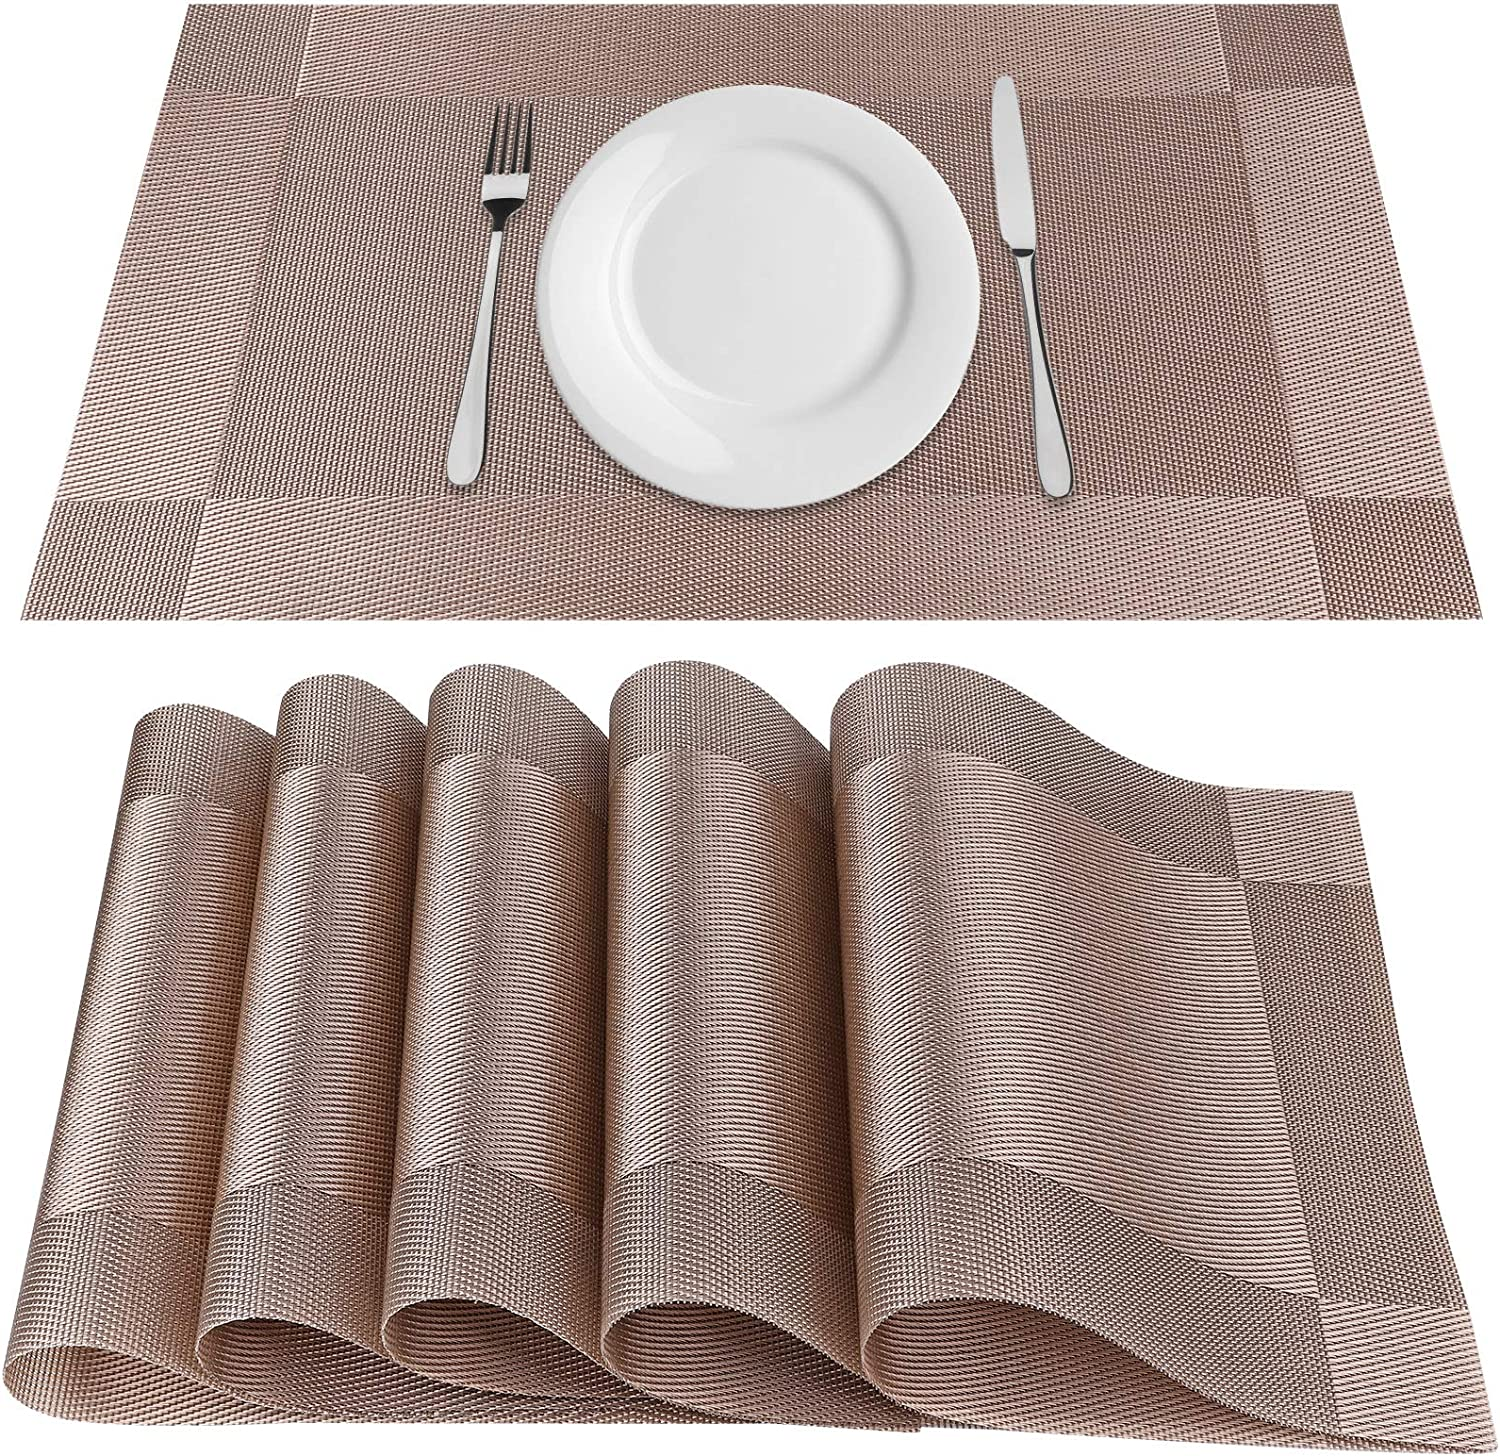 BESTWIN Placemats for Dining Table Mats Set of 6 Heat-Resistant Place mats StainAnti-Skid Washable Easy to Cleaning Woven Vinyl Placemats for Kitchen